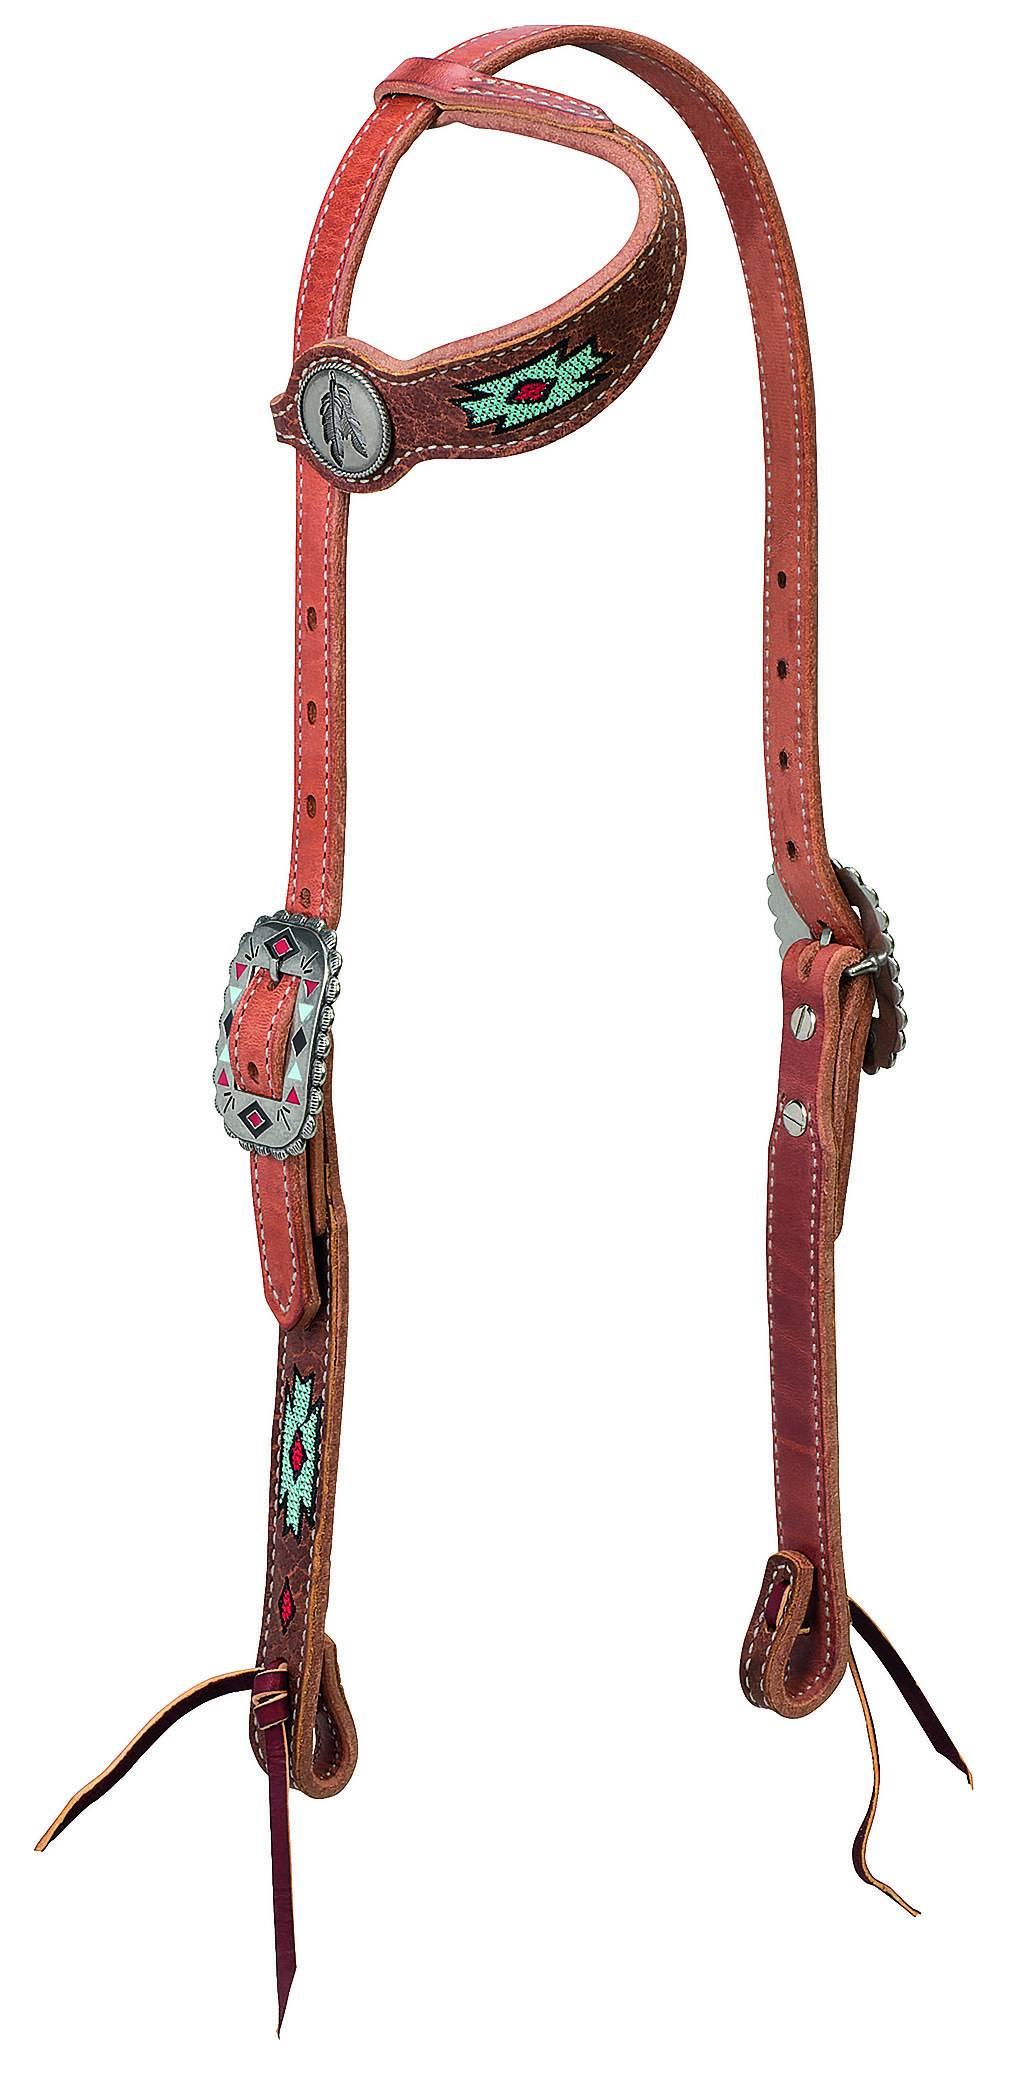 Weaver Native Spirit Sliding Ear Headstall